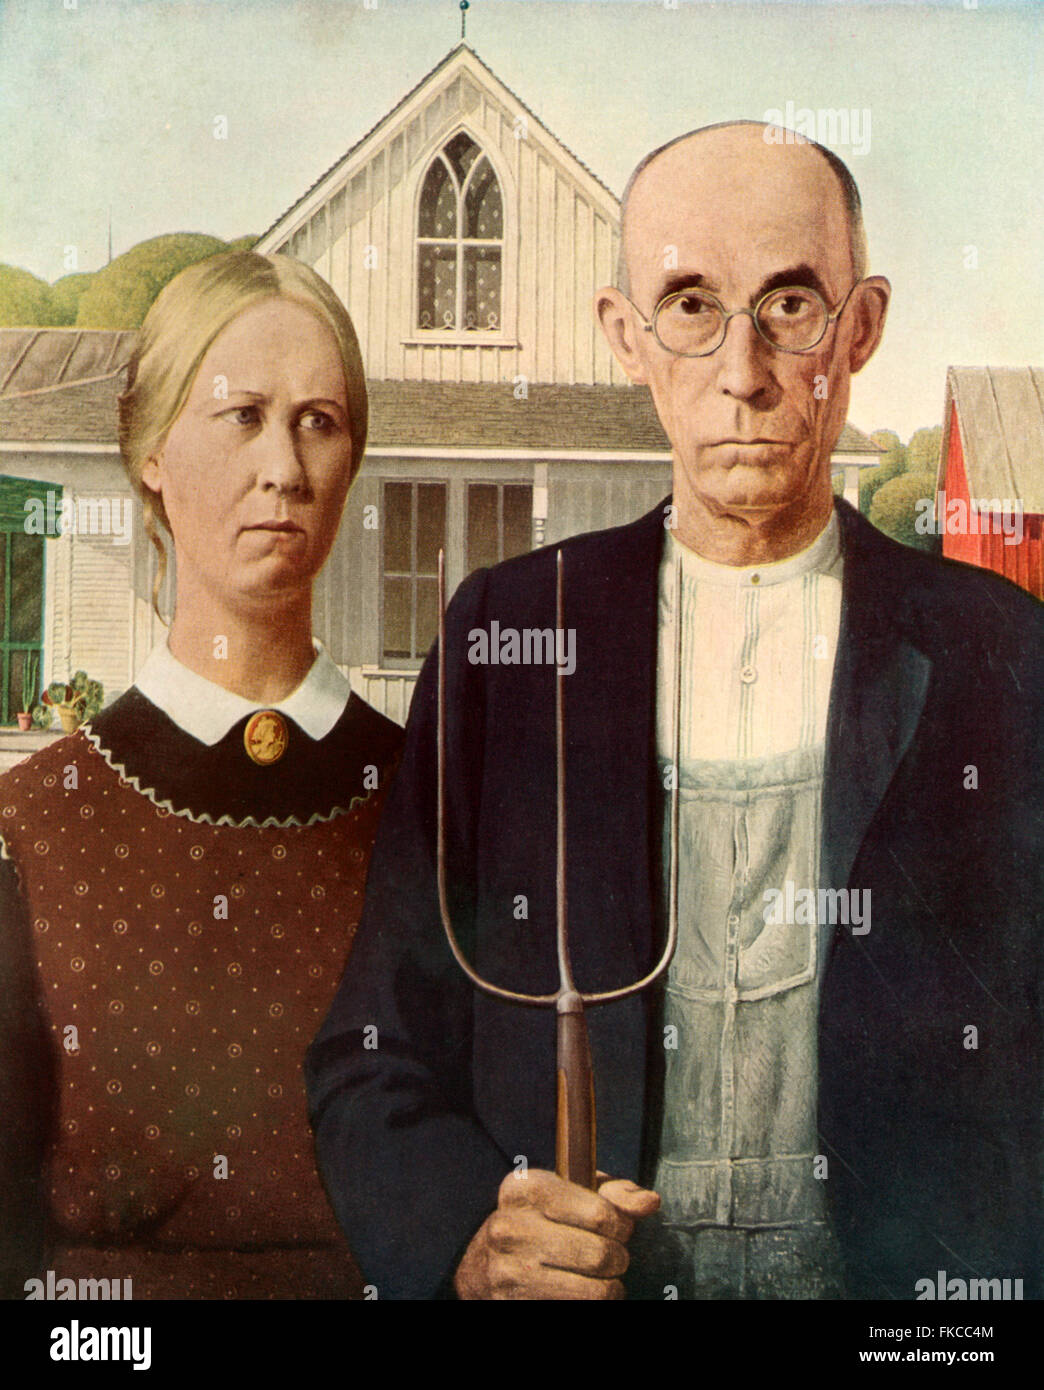 1930s USA American Gothic Book Plate - Stock Image